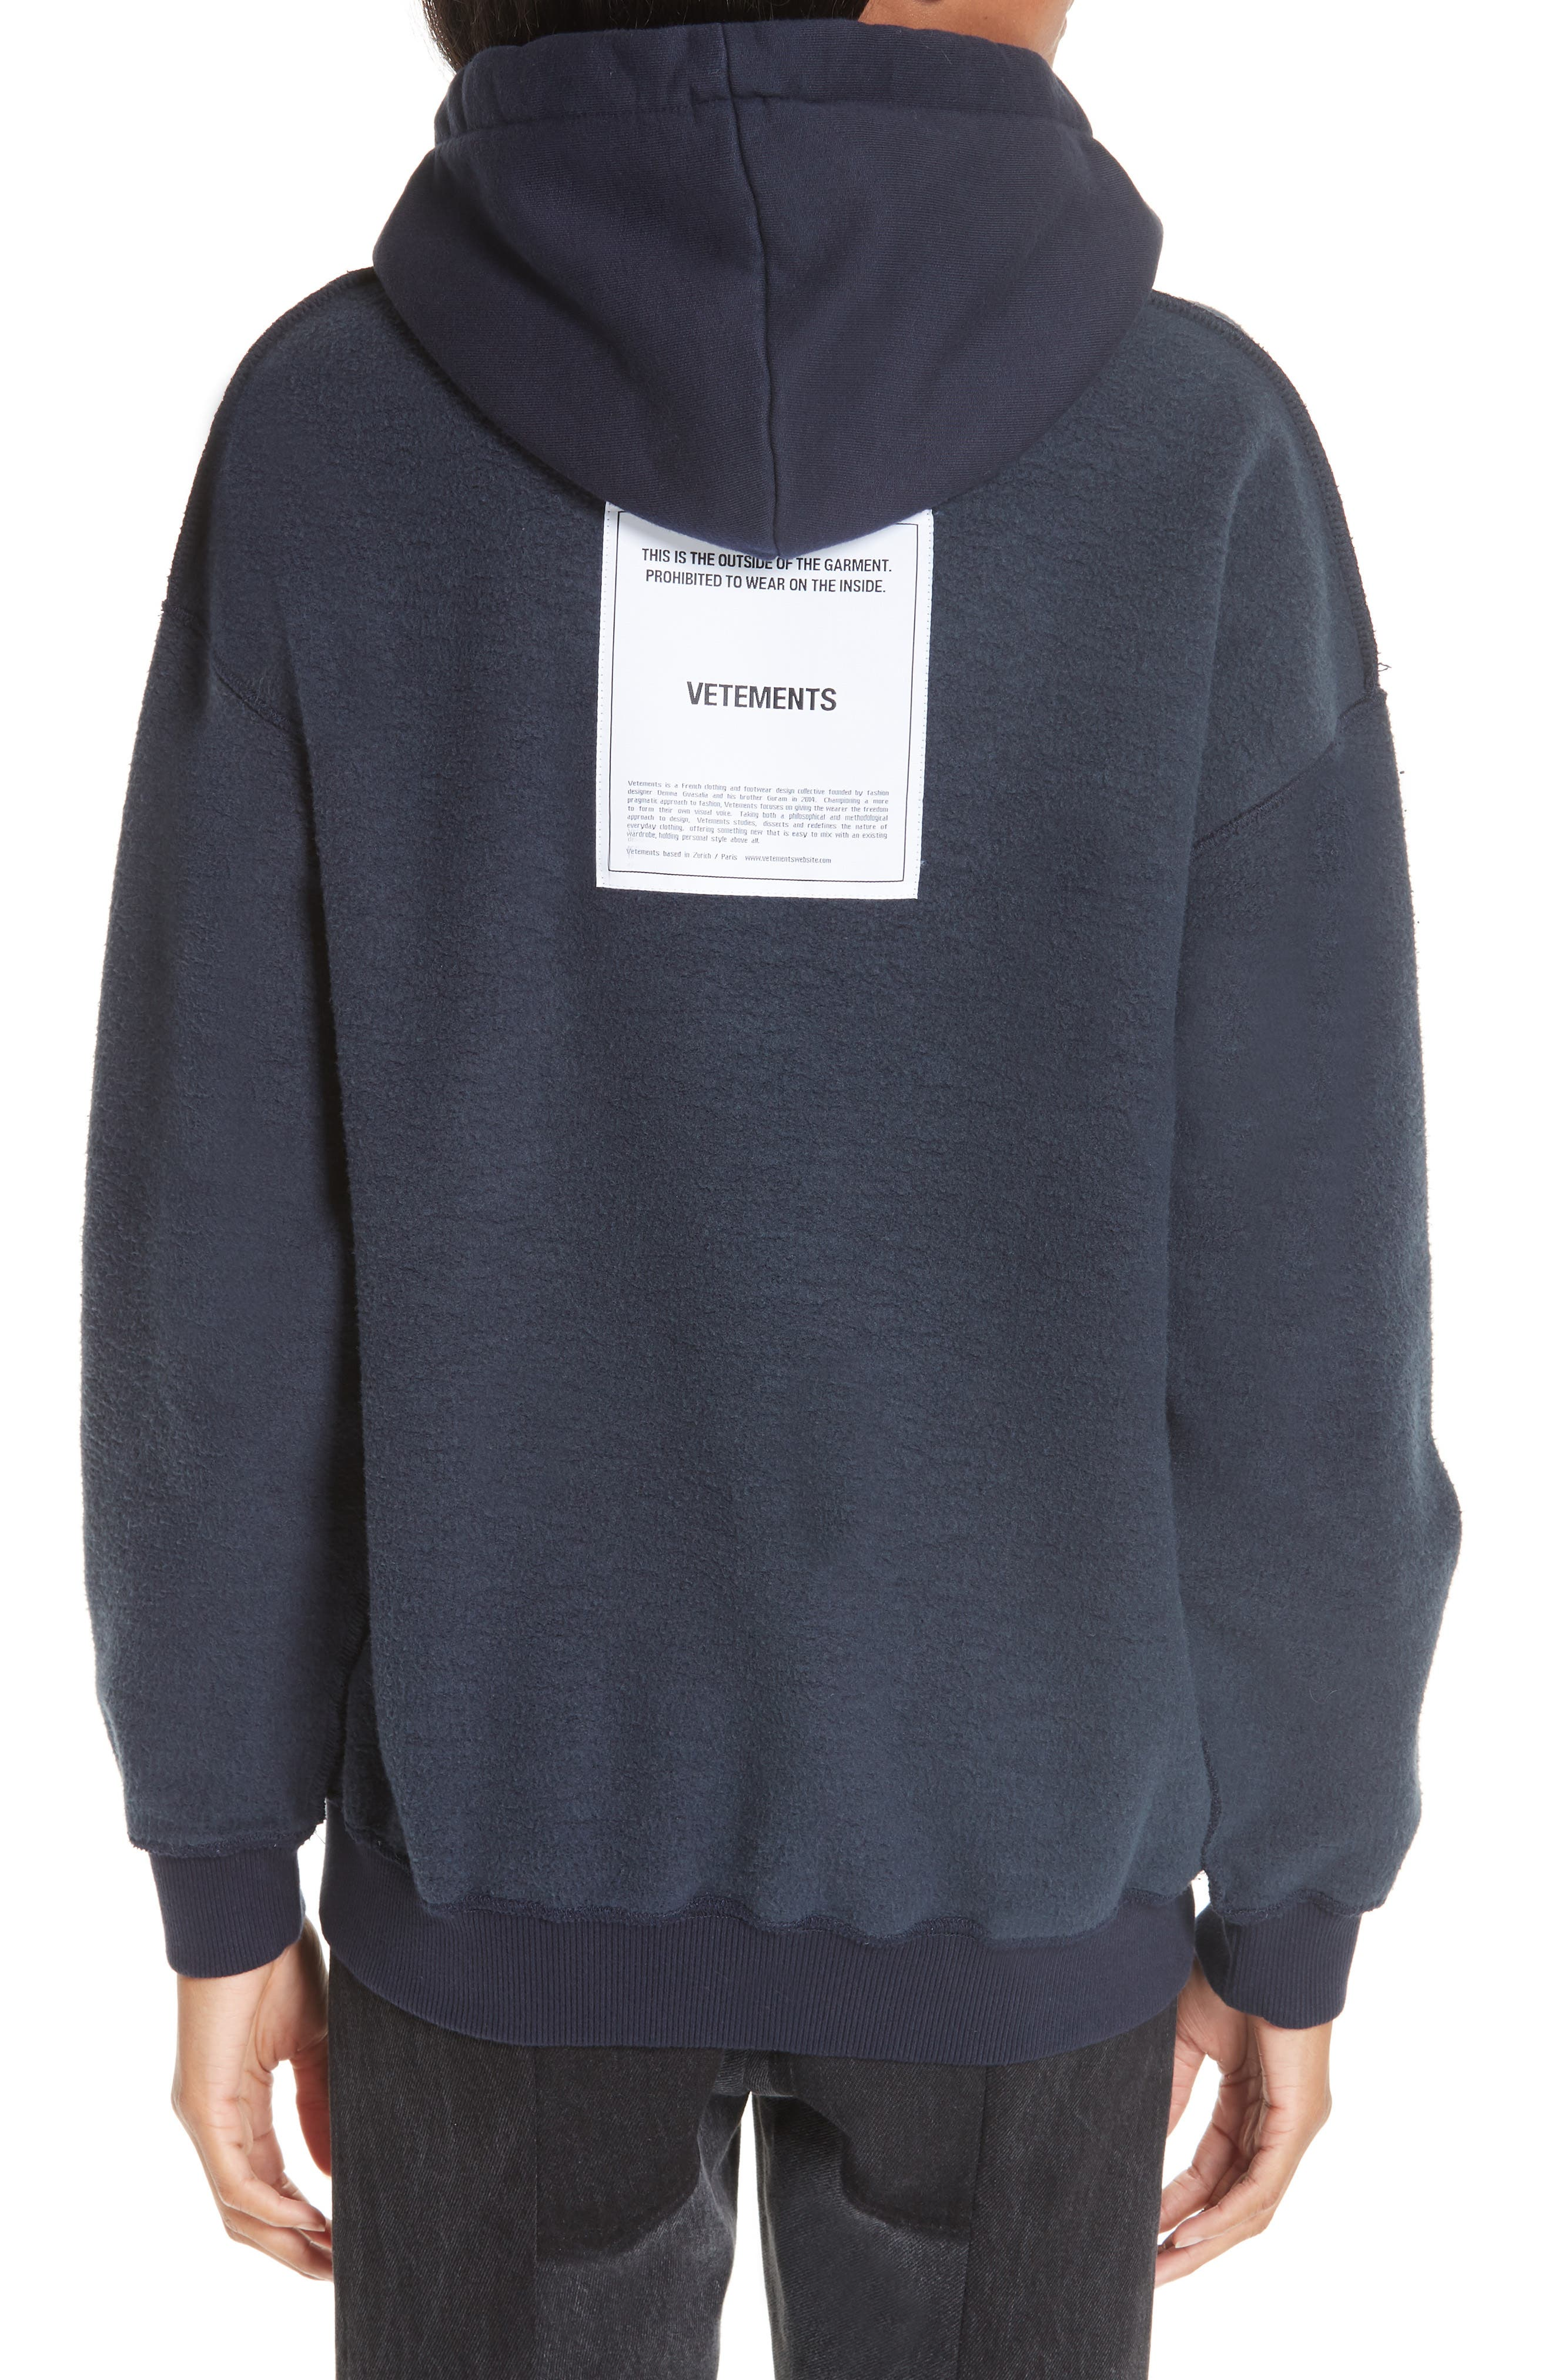 Inside-Out Hoodie,                             Alternate thumbnail 2, color,                             NAVY